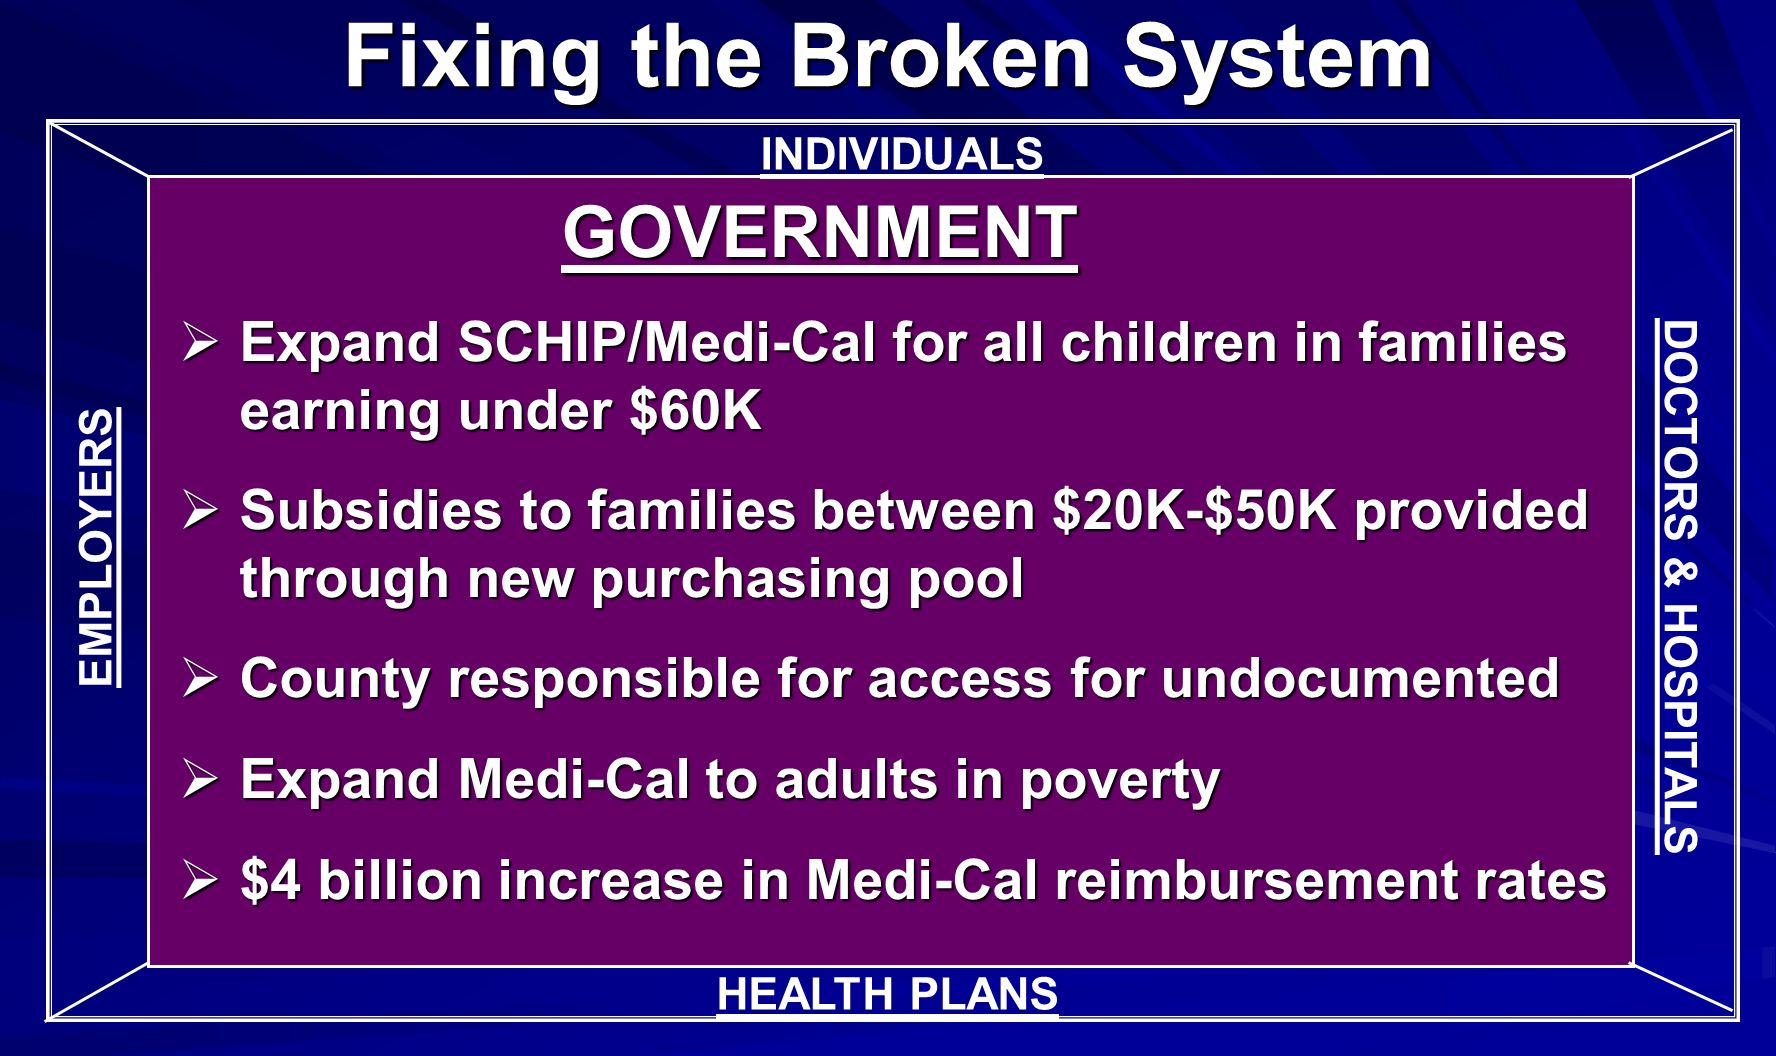 INDIVIDUALS GOVERNMENT Expand SCHIP/Medi-Cal for all children in families earning under $60K Expand SCHIP/Medi-Cal for all children in families earning under $60K Subsidies to families between $20K-$50K provided through new purchasing pool Subsidies to families between $20K-$50K provided through new purchasing pool County responsible for access for undocumented County responsible for access for undocumented Expand Medi-Cal to adults in poverty Expand Medi-Cal to adults in poverty $4 billion increase in Medi-Cal reimbursement rates $4 billion increase in Medi-Cal reimbursement rates DOCTORS & HOSPITALS Fixing the Broken System HEALTH PLANS EMPLOYERS